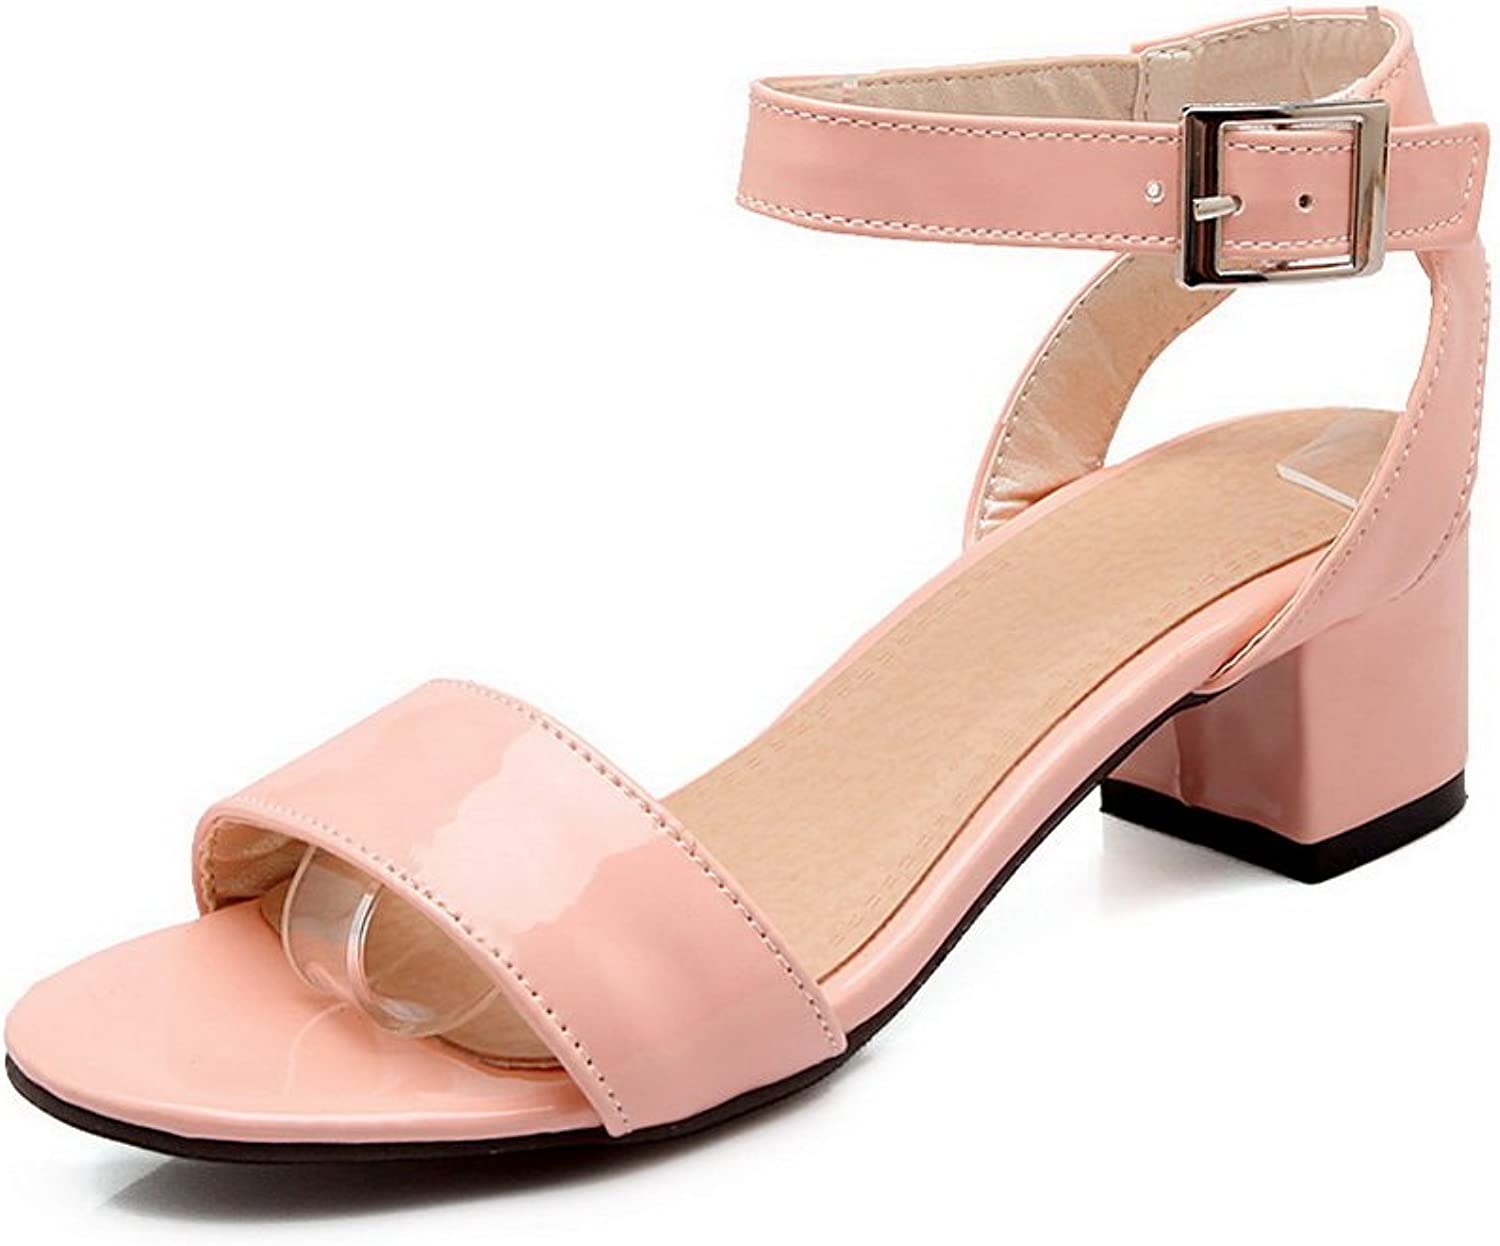 AdeeSu Womens Structured Structured Not_Water_Resistant Solid Urethane Sandals SLC03719